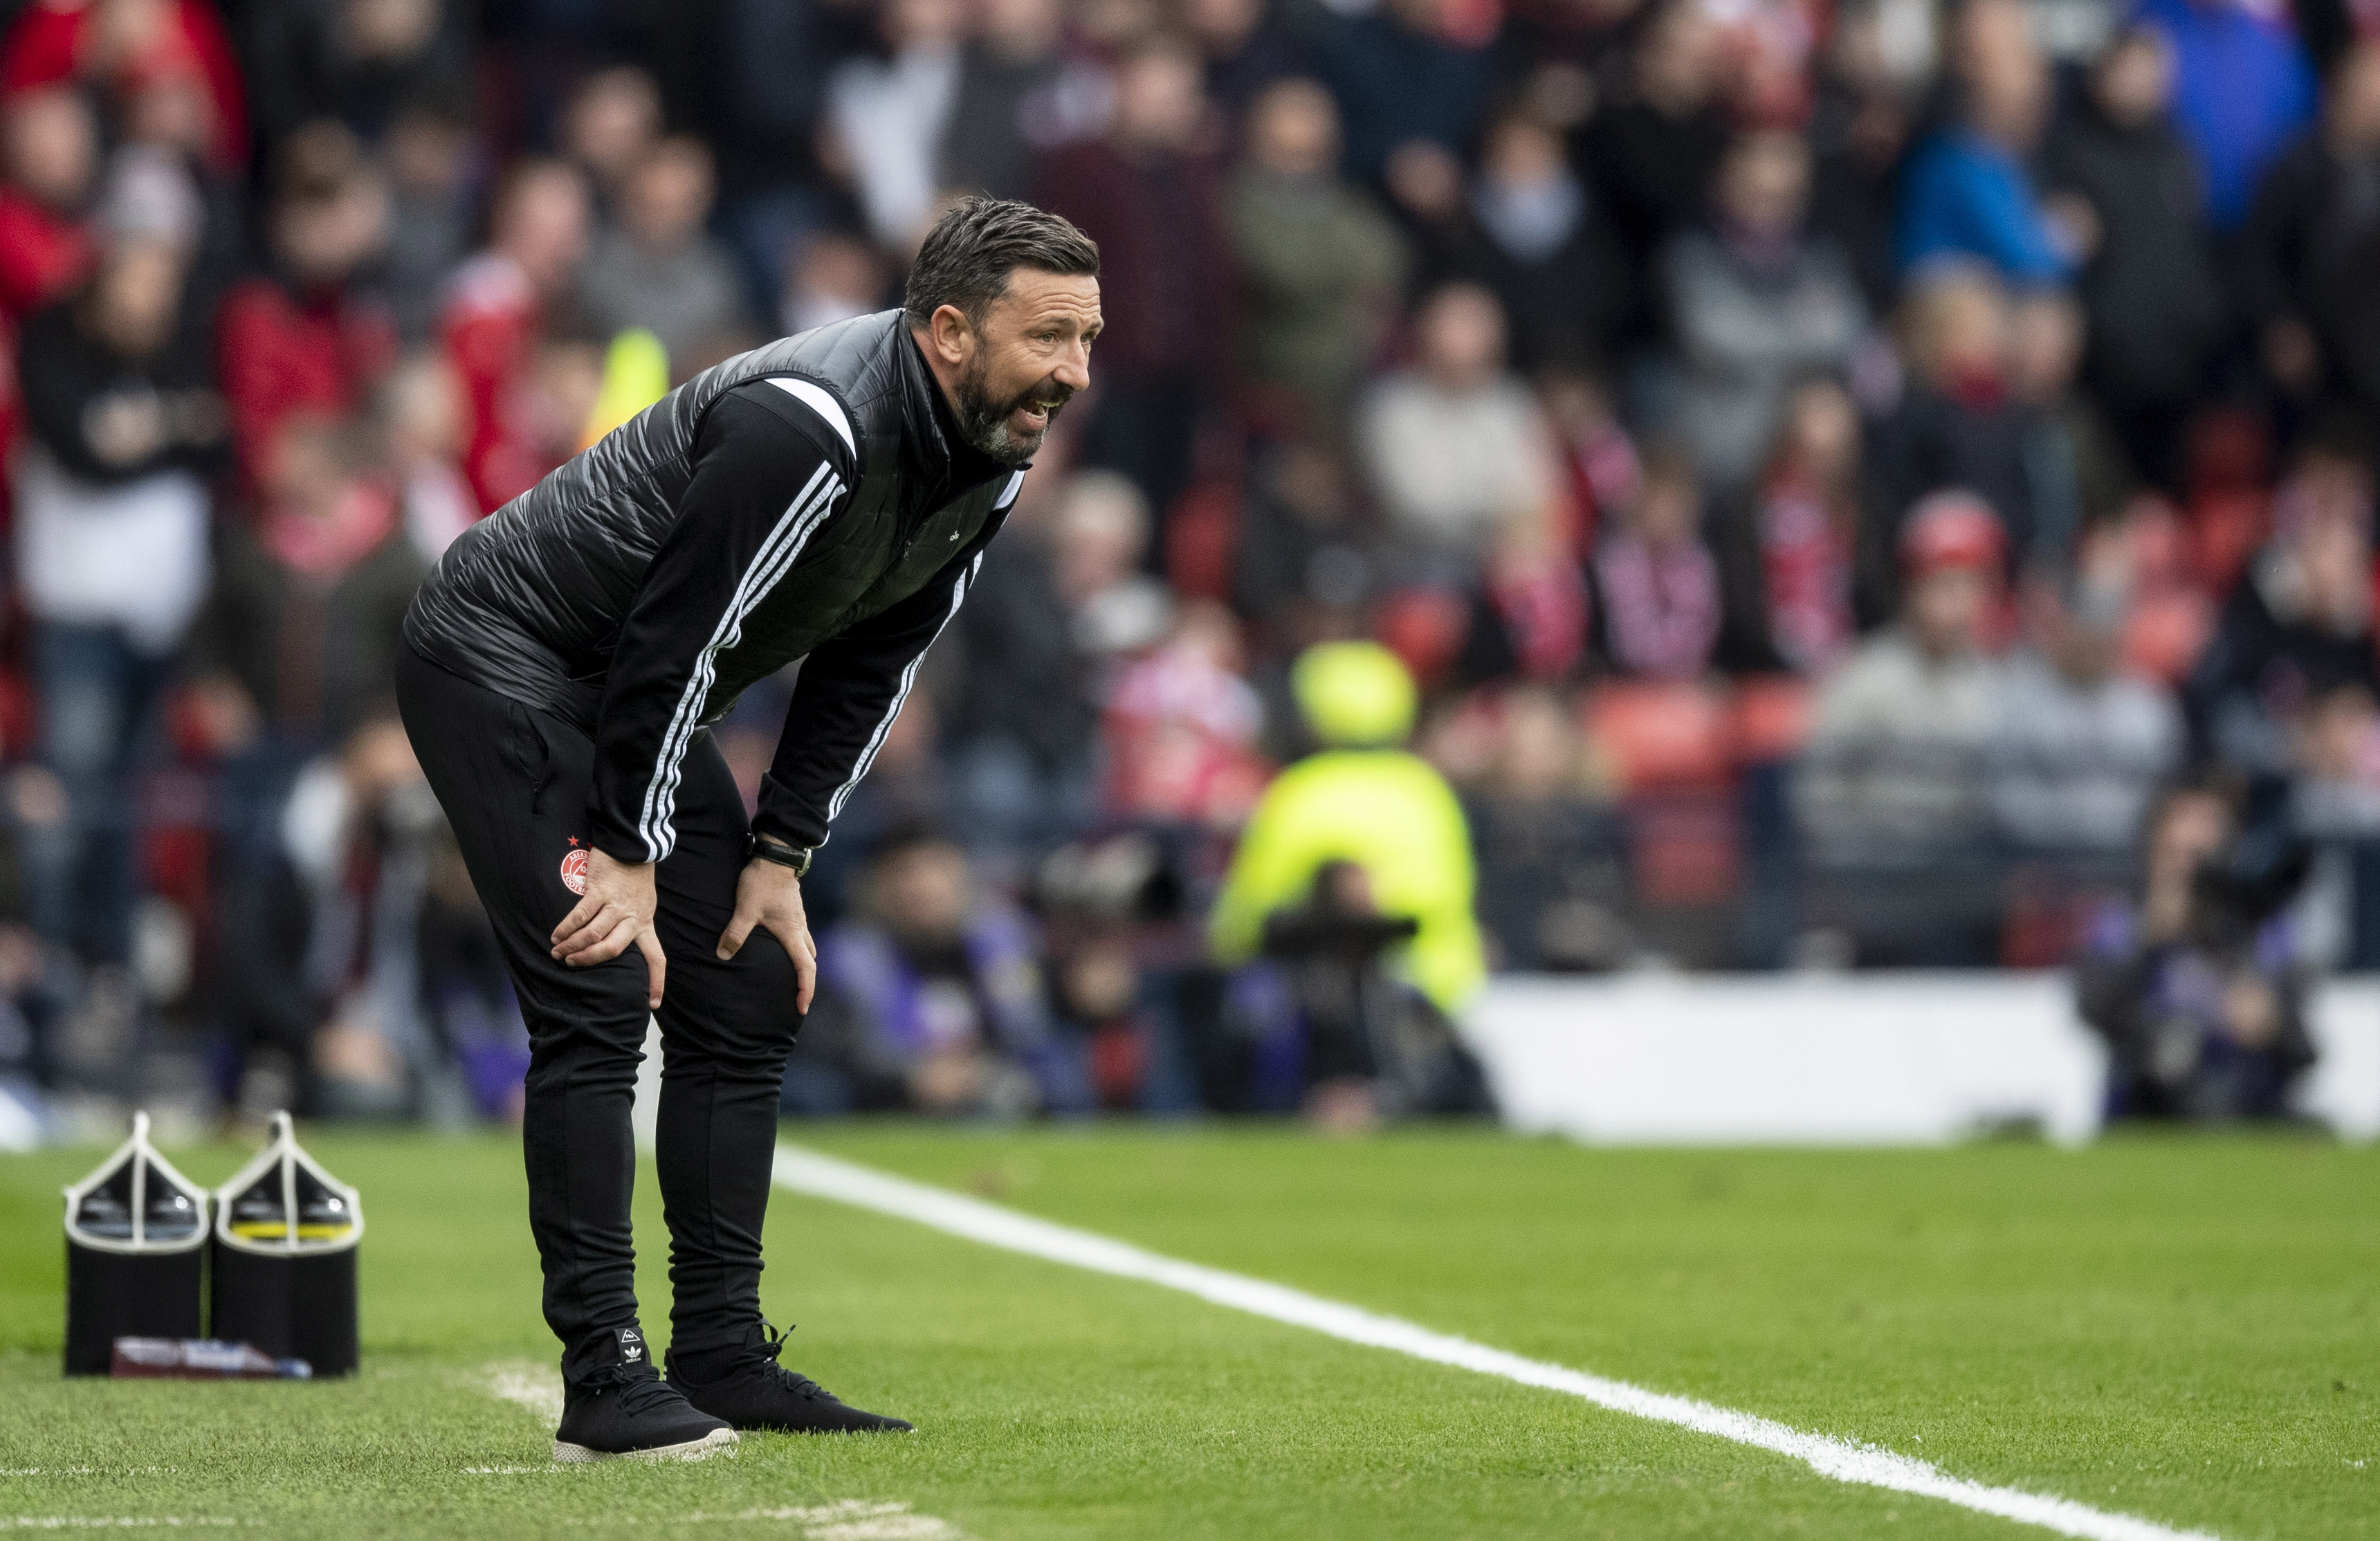 Aberdeen manager Derek McInnes shows his frustration at Hampden.